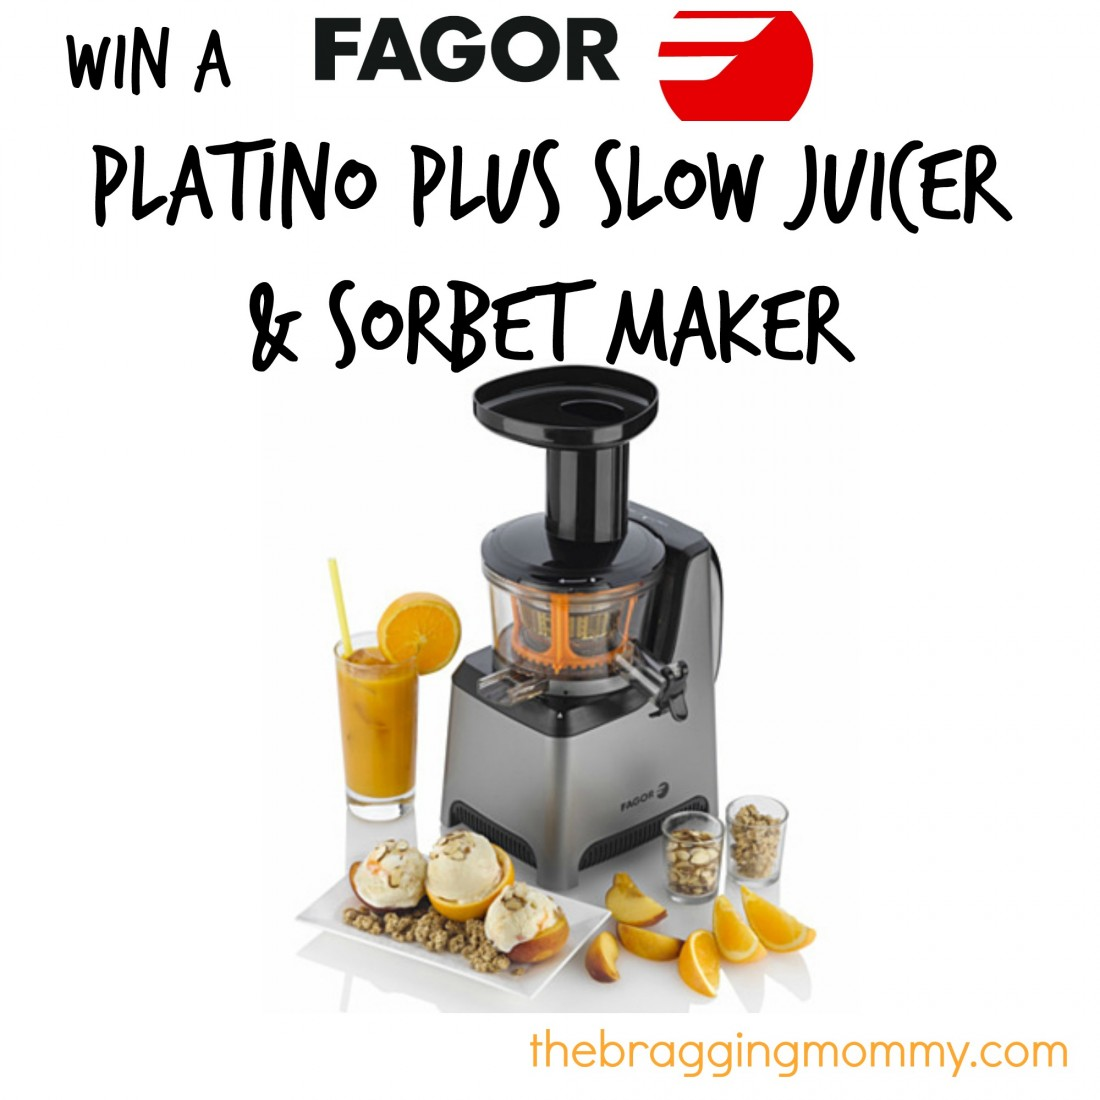 Fagor Platino Plus Slow Juicer And Sorbet Maker Reviews : {Brag Worthy Christmas} Fagor America Platino Plus Slow Juicer & Sorbet Maker Review and Giveaway